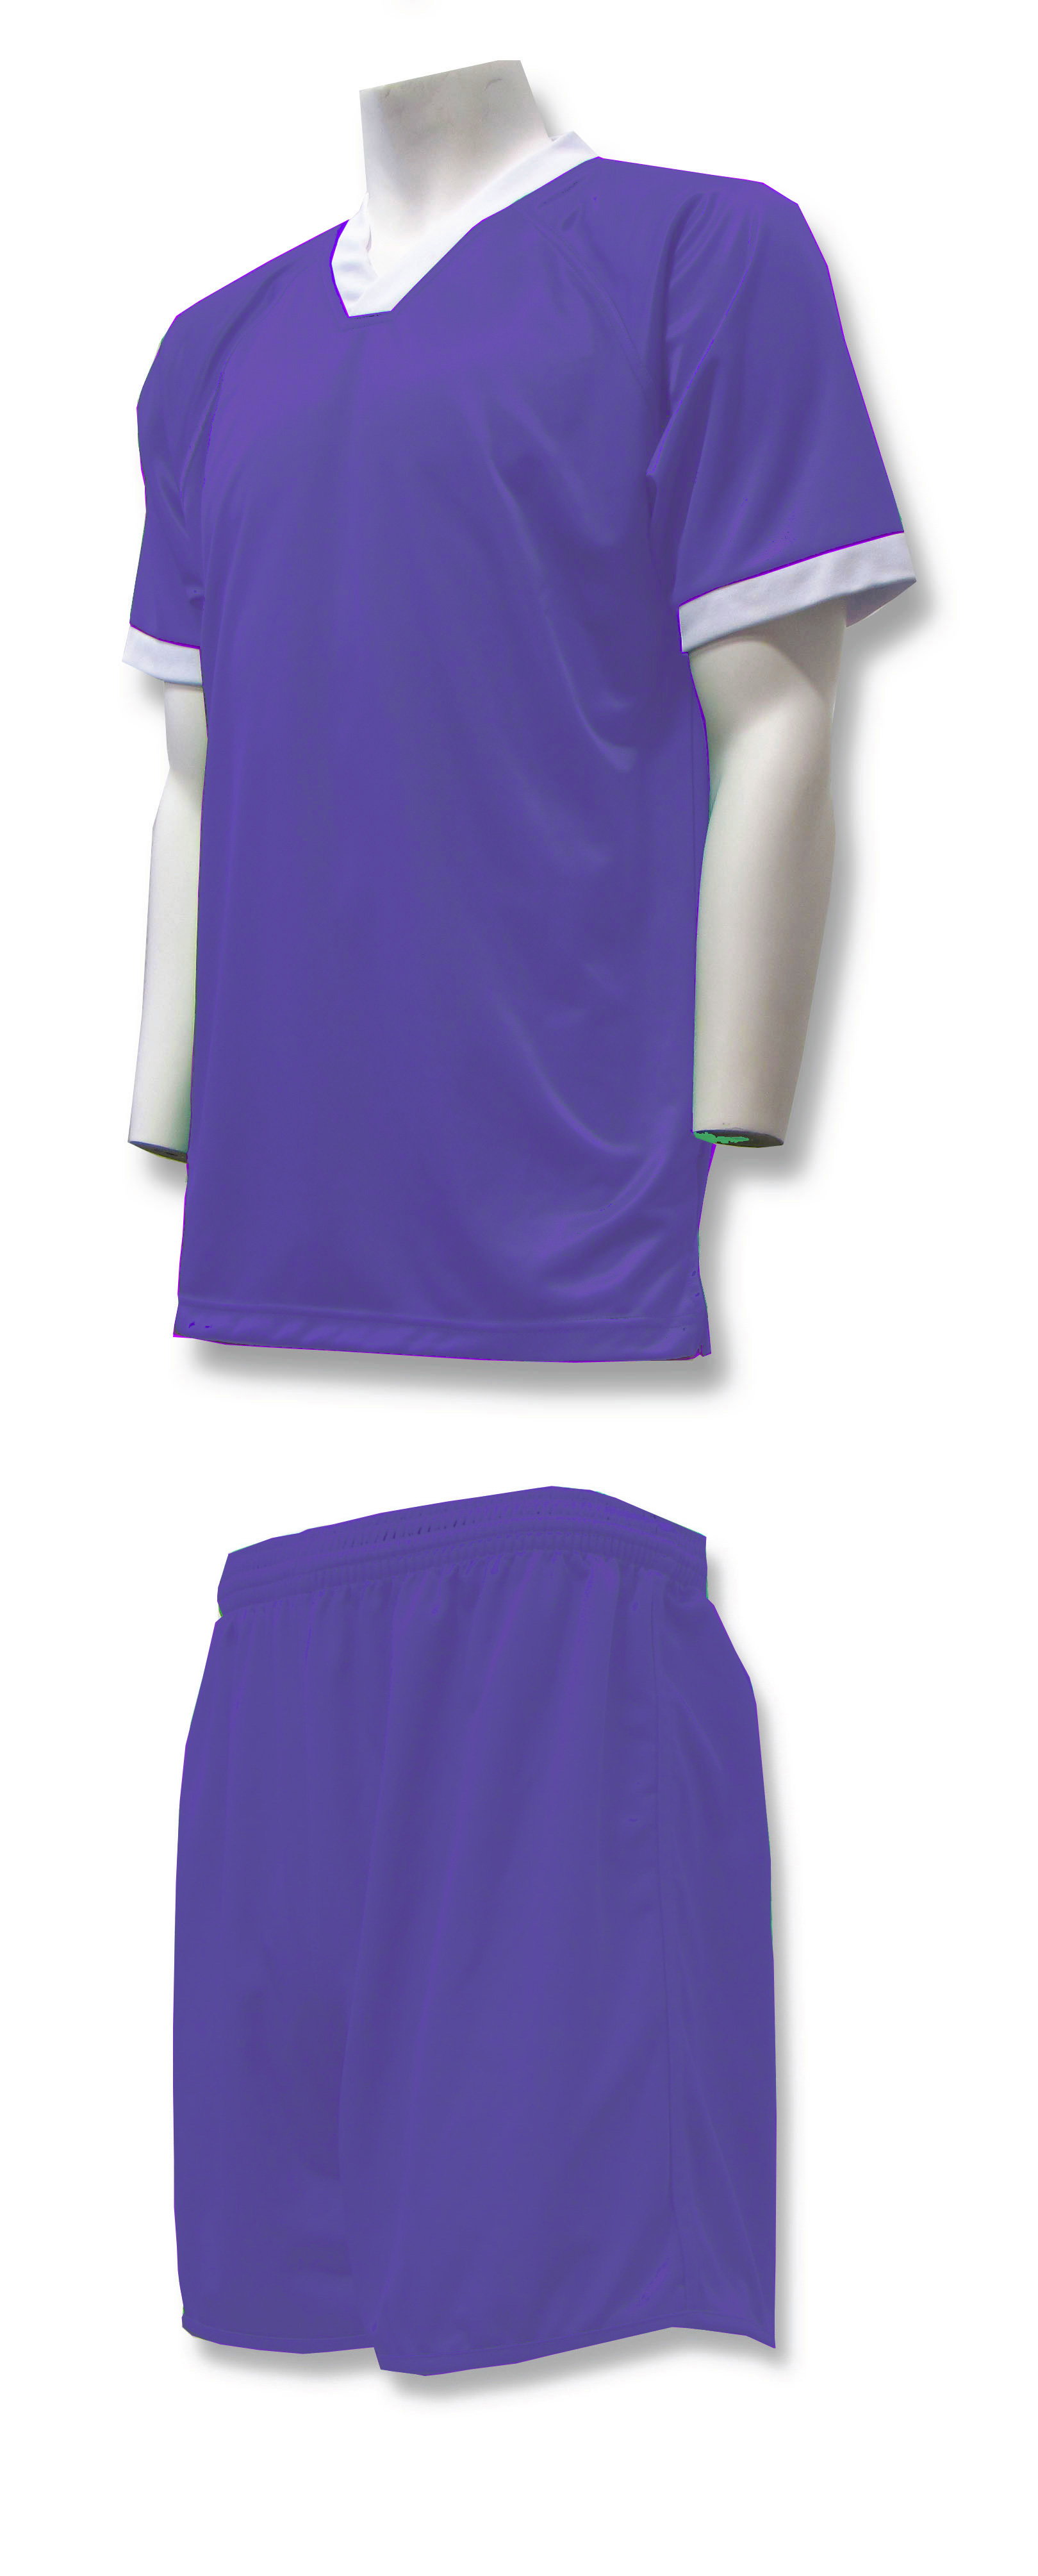 Forza soccer uniform kit in purple by Code Four Athletics